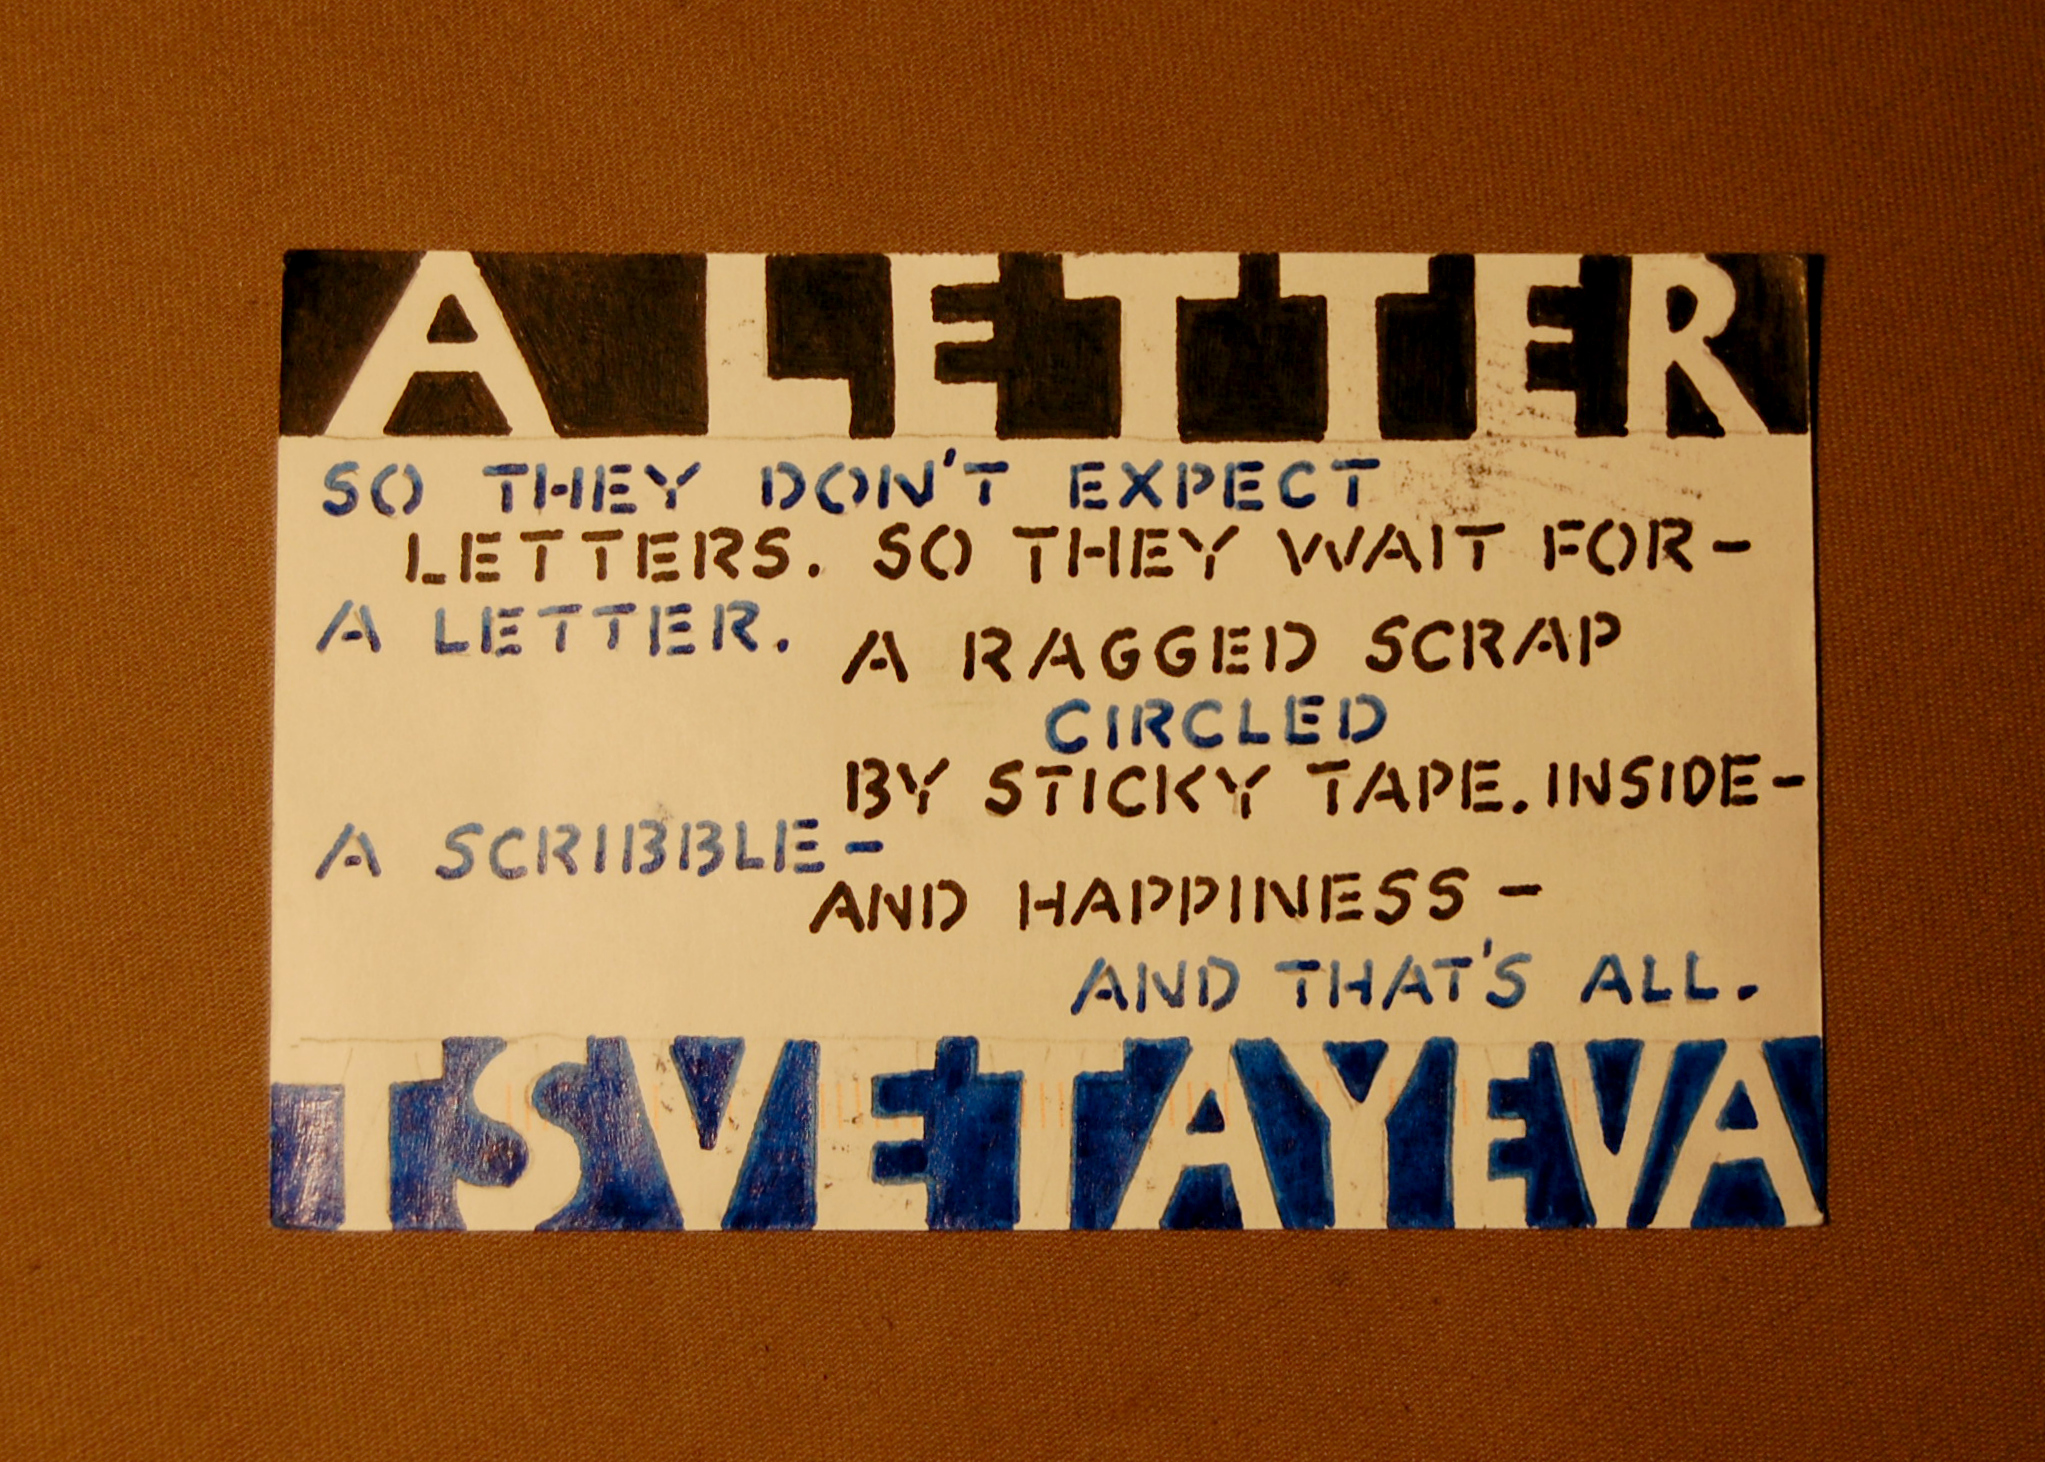 A Letter (English) - Postcard 2, Side B